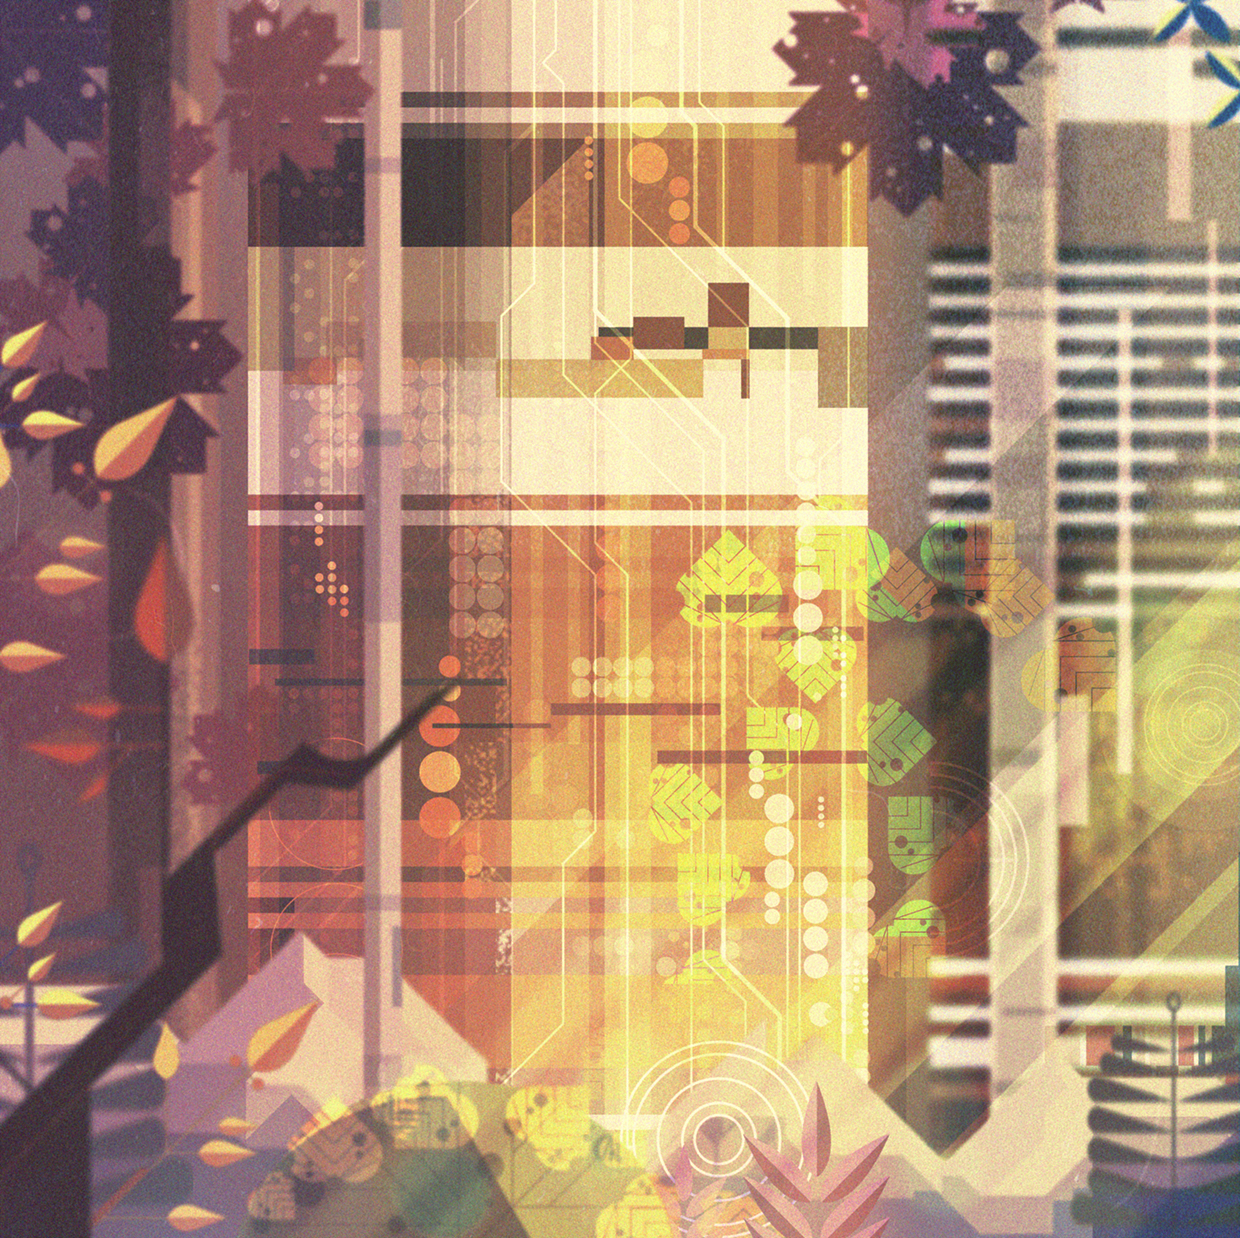 Illustration / James Gilleard (17)